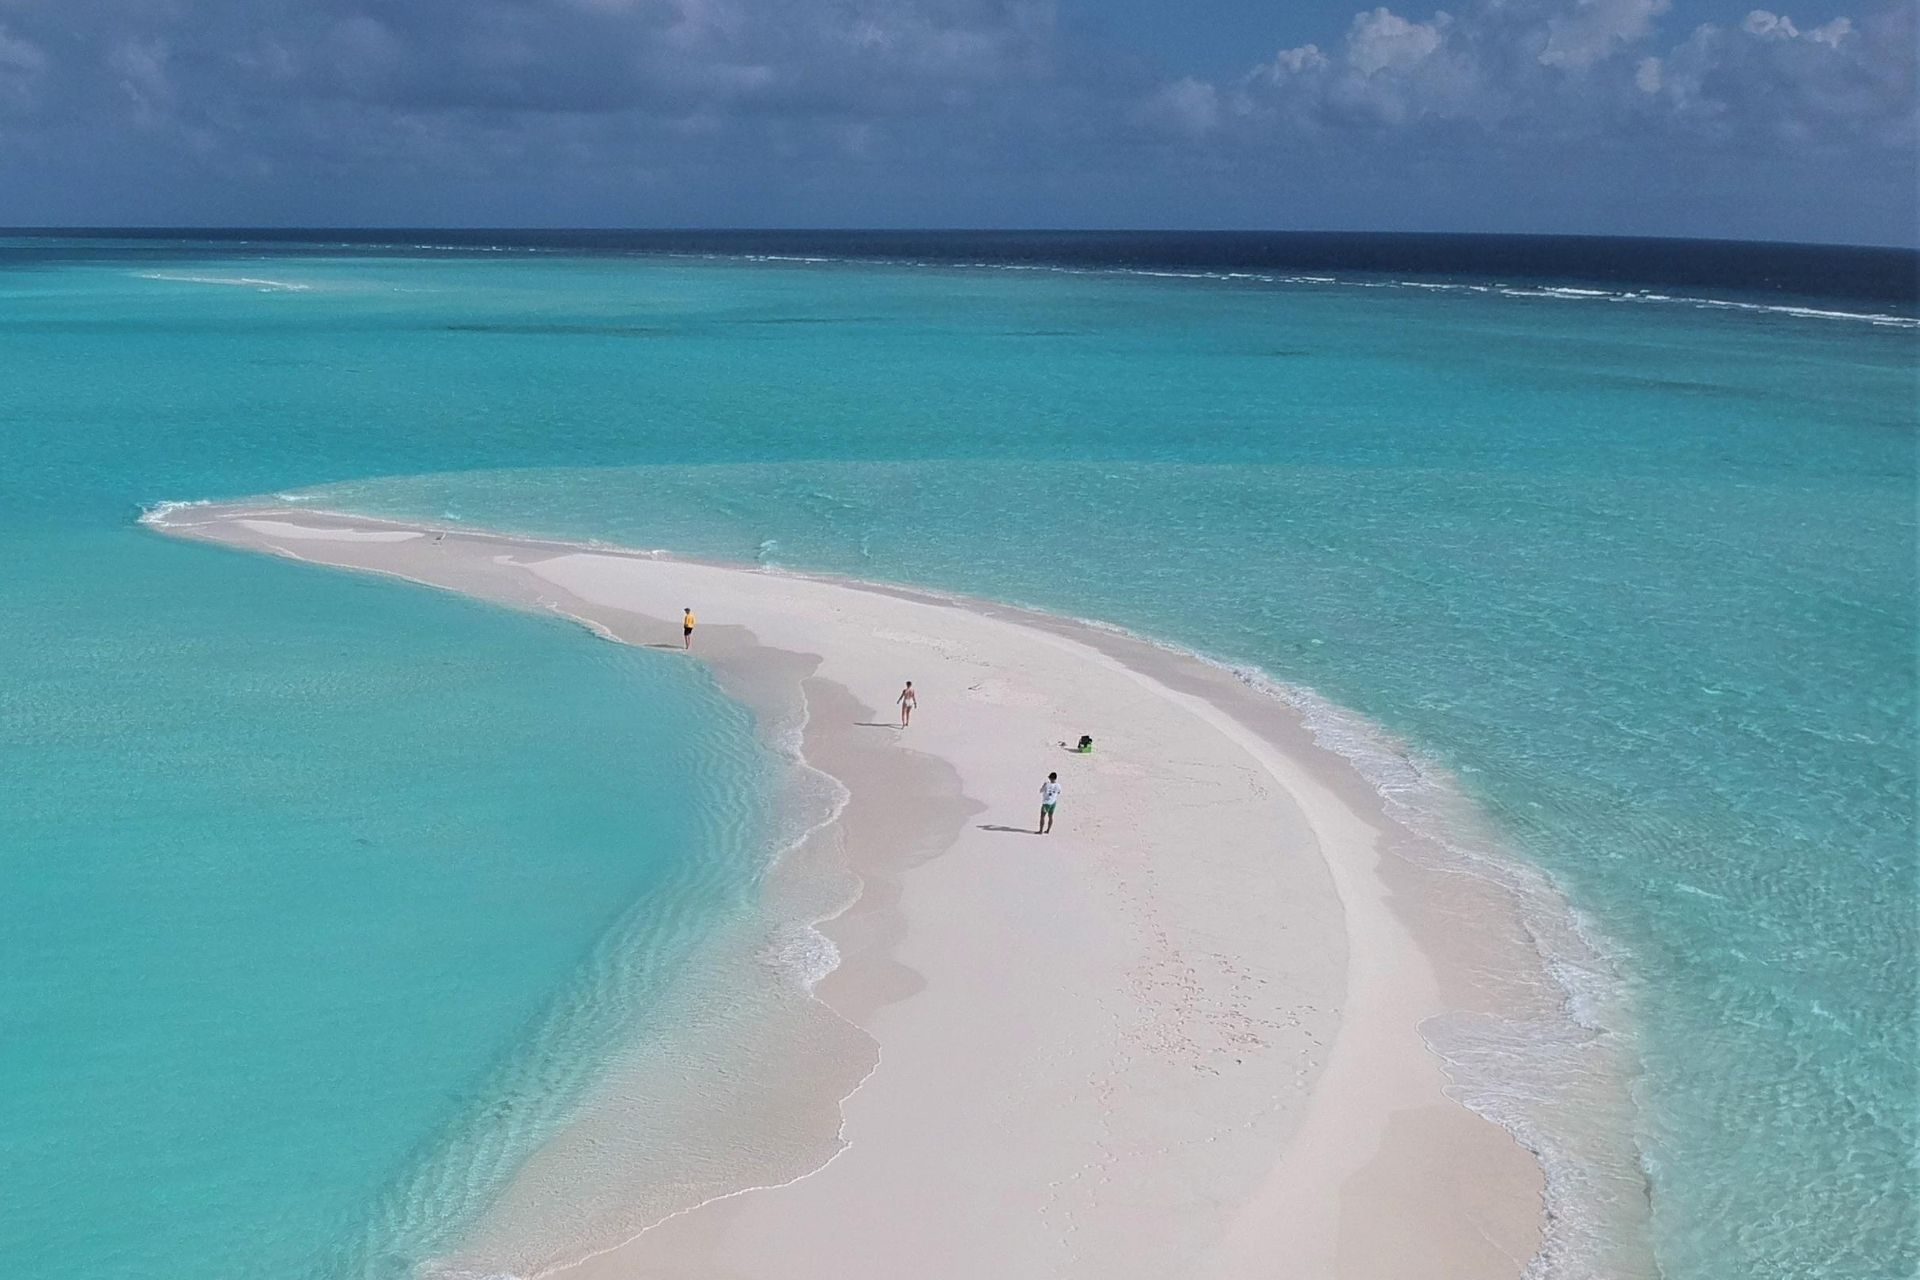 Maldives Snorkeling, Sandbank & Sunset Cruise Day Trip